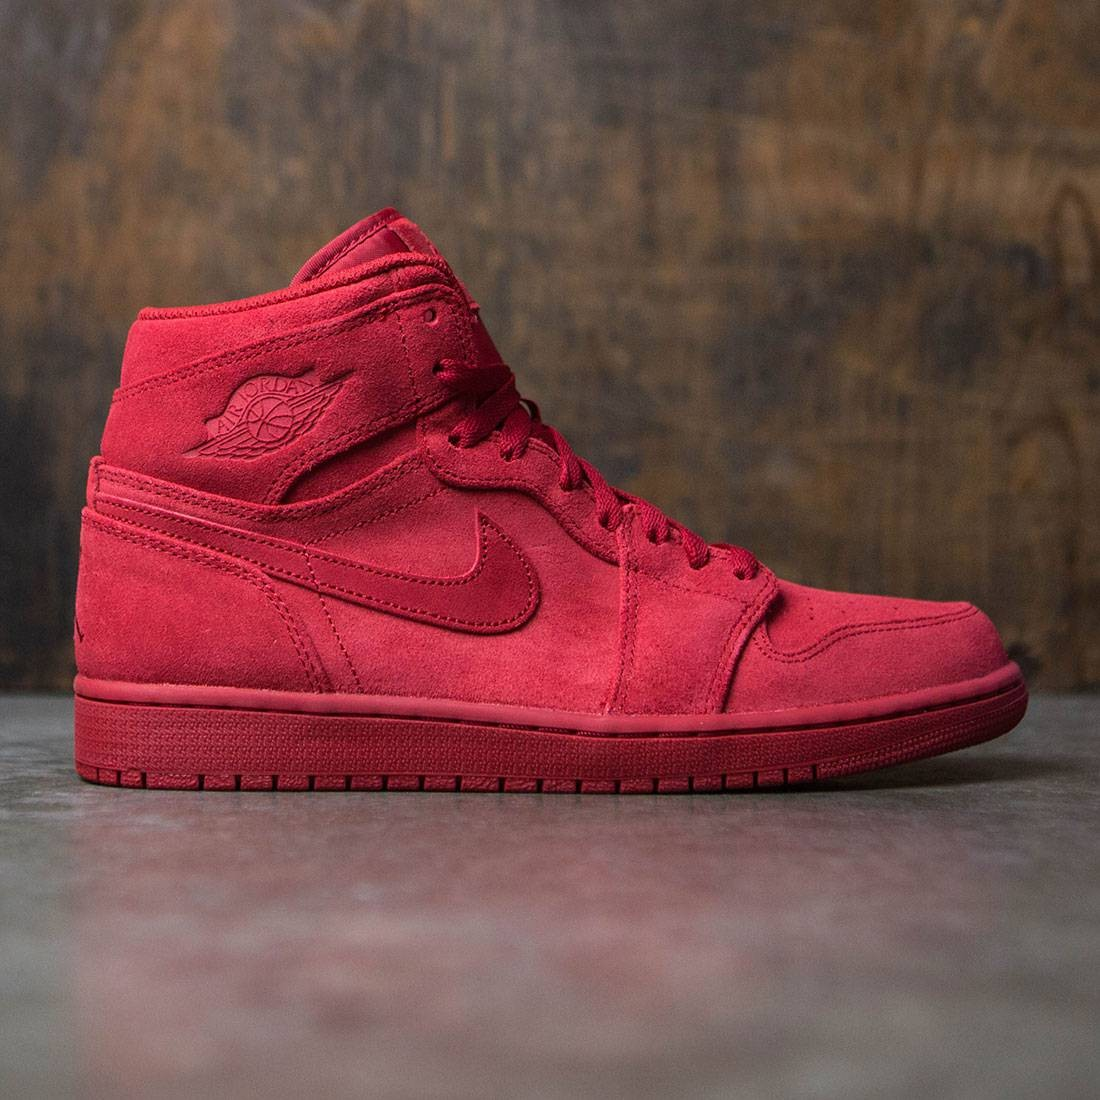 c1d1eea7989f jordan men air jordan 1 retro high red gym red